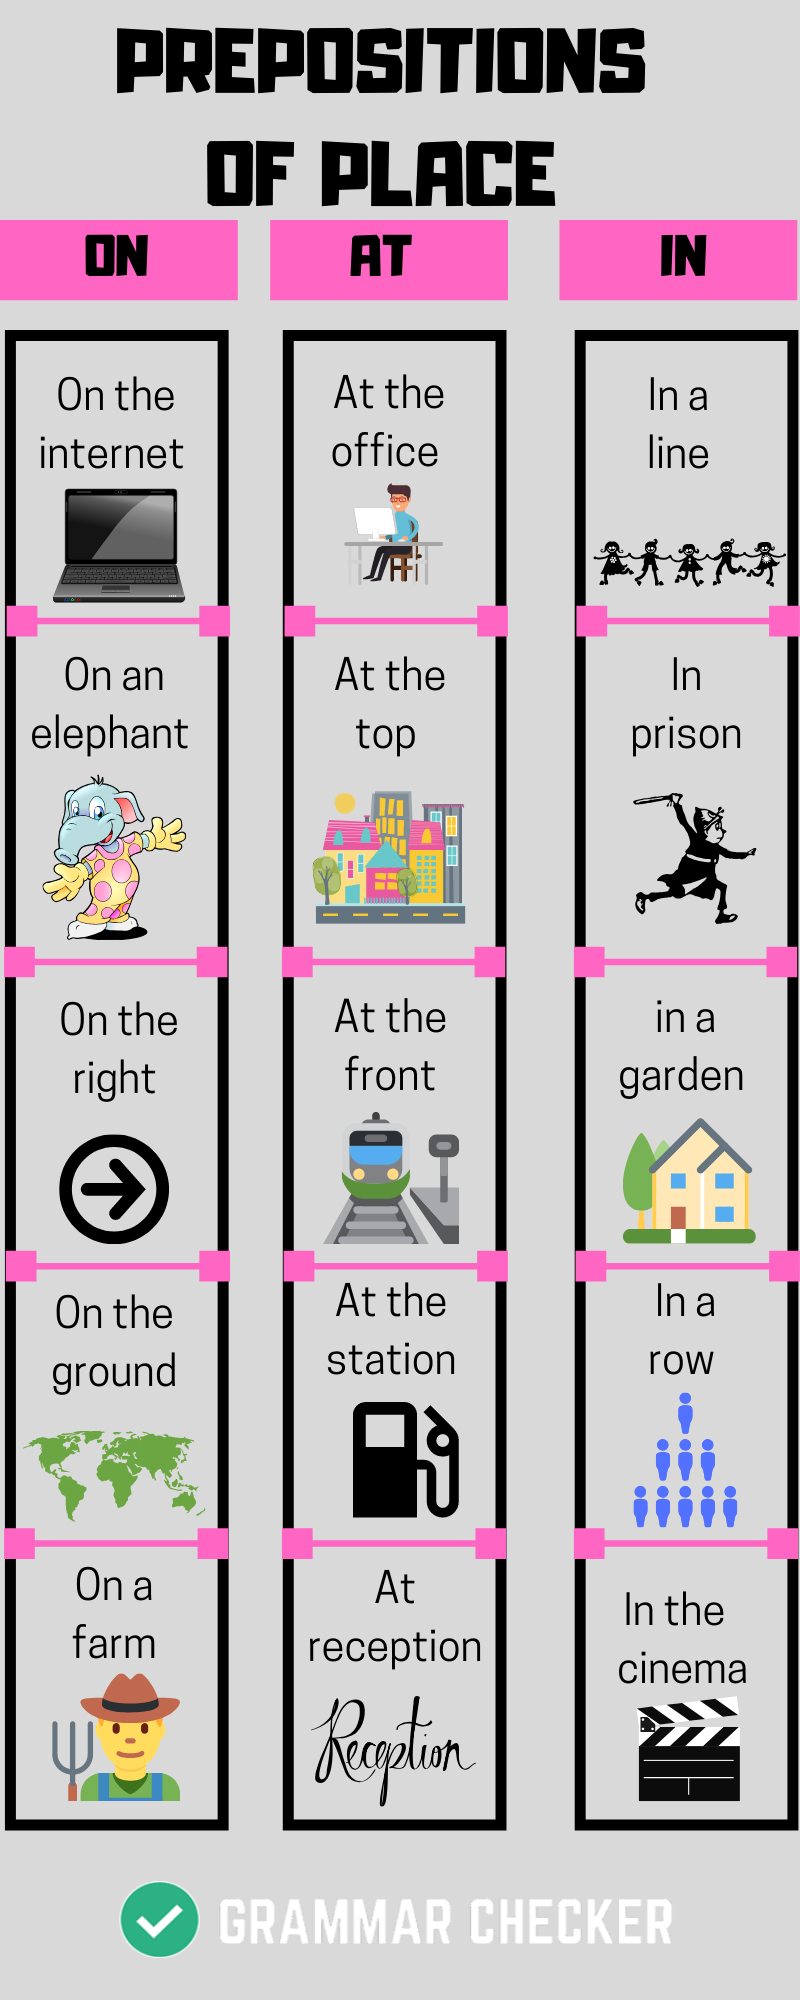 Preposition of Place (Infographic)